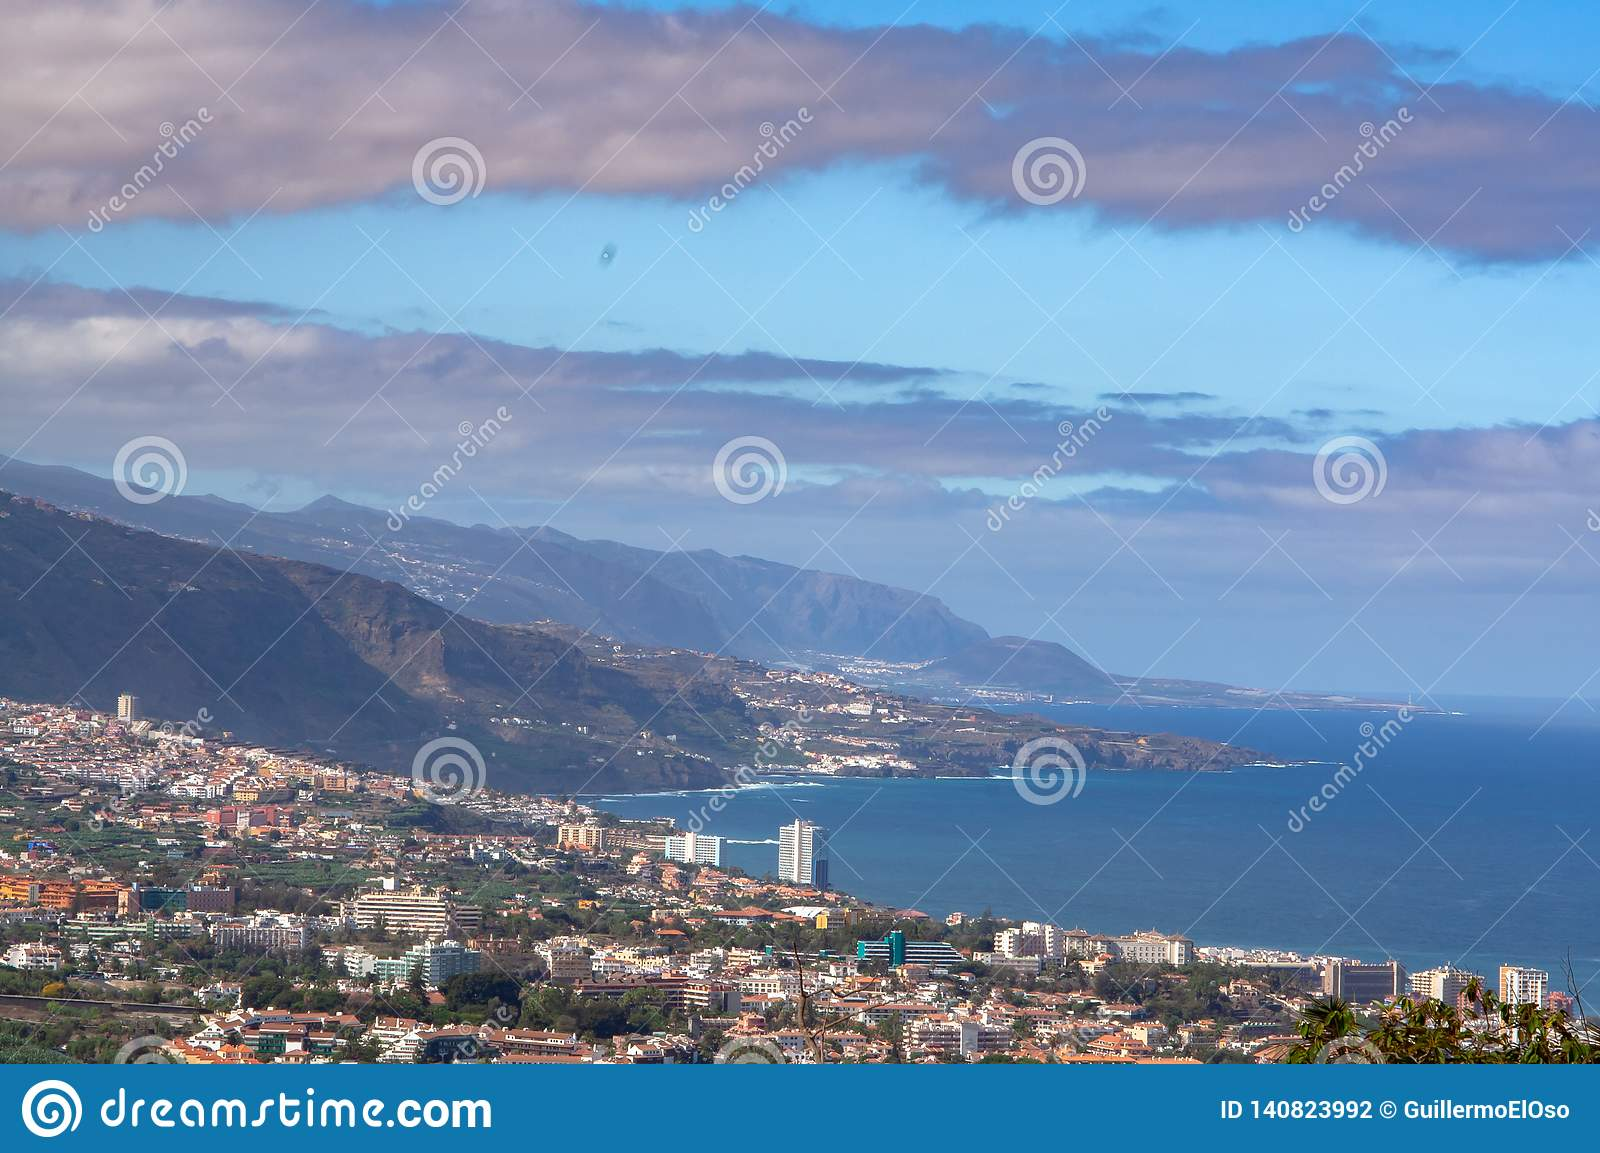 Far view from a mountain on wild coast with City